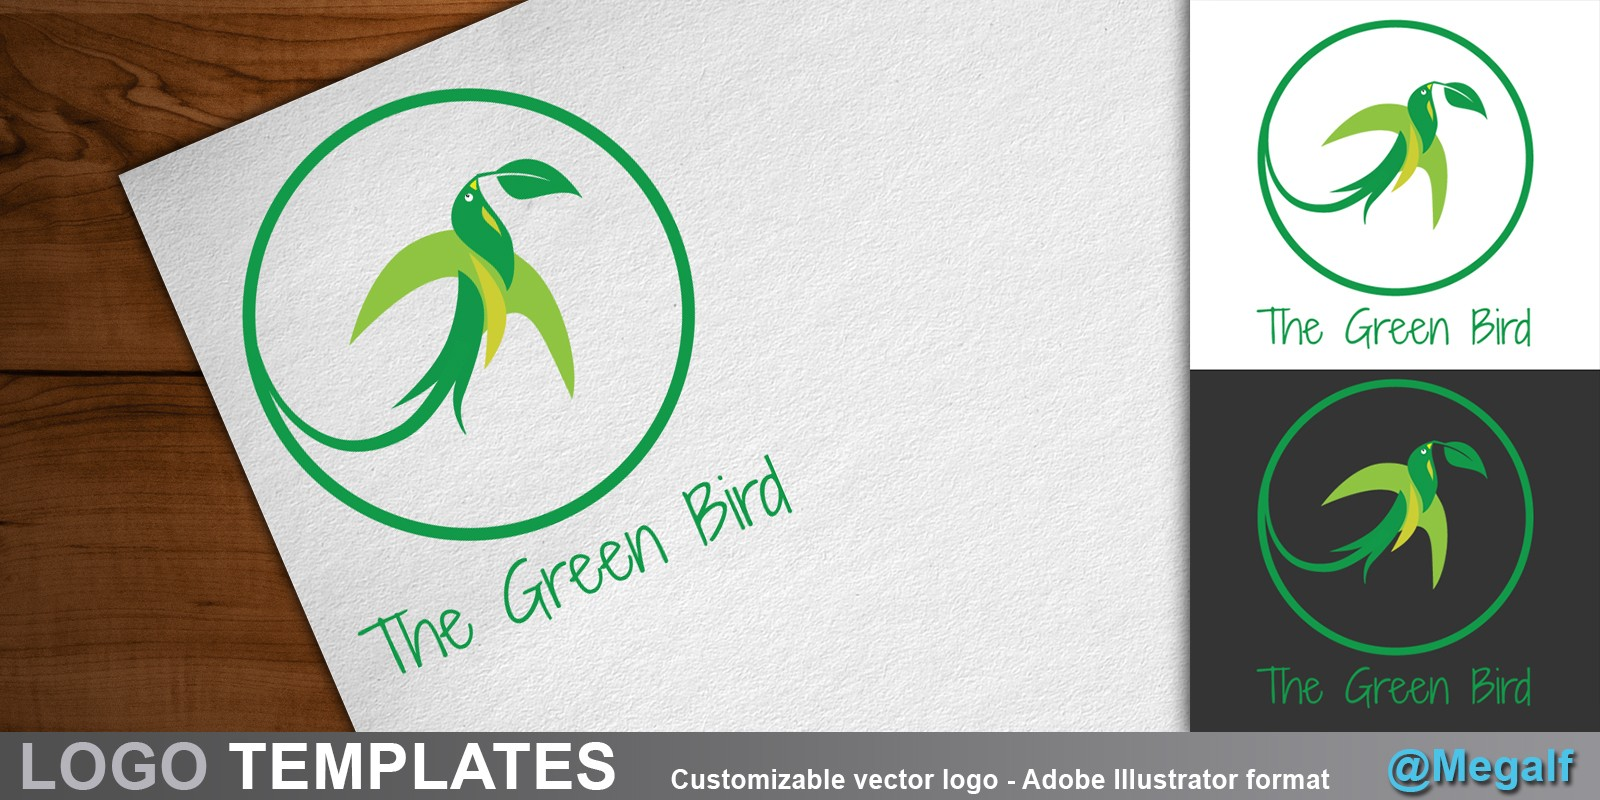 The Green bird - Logo template